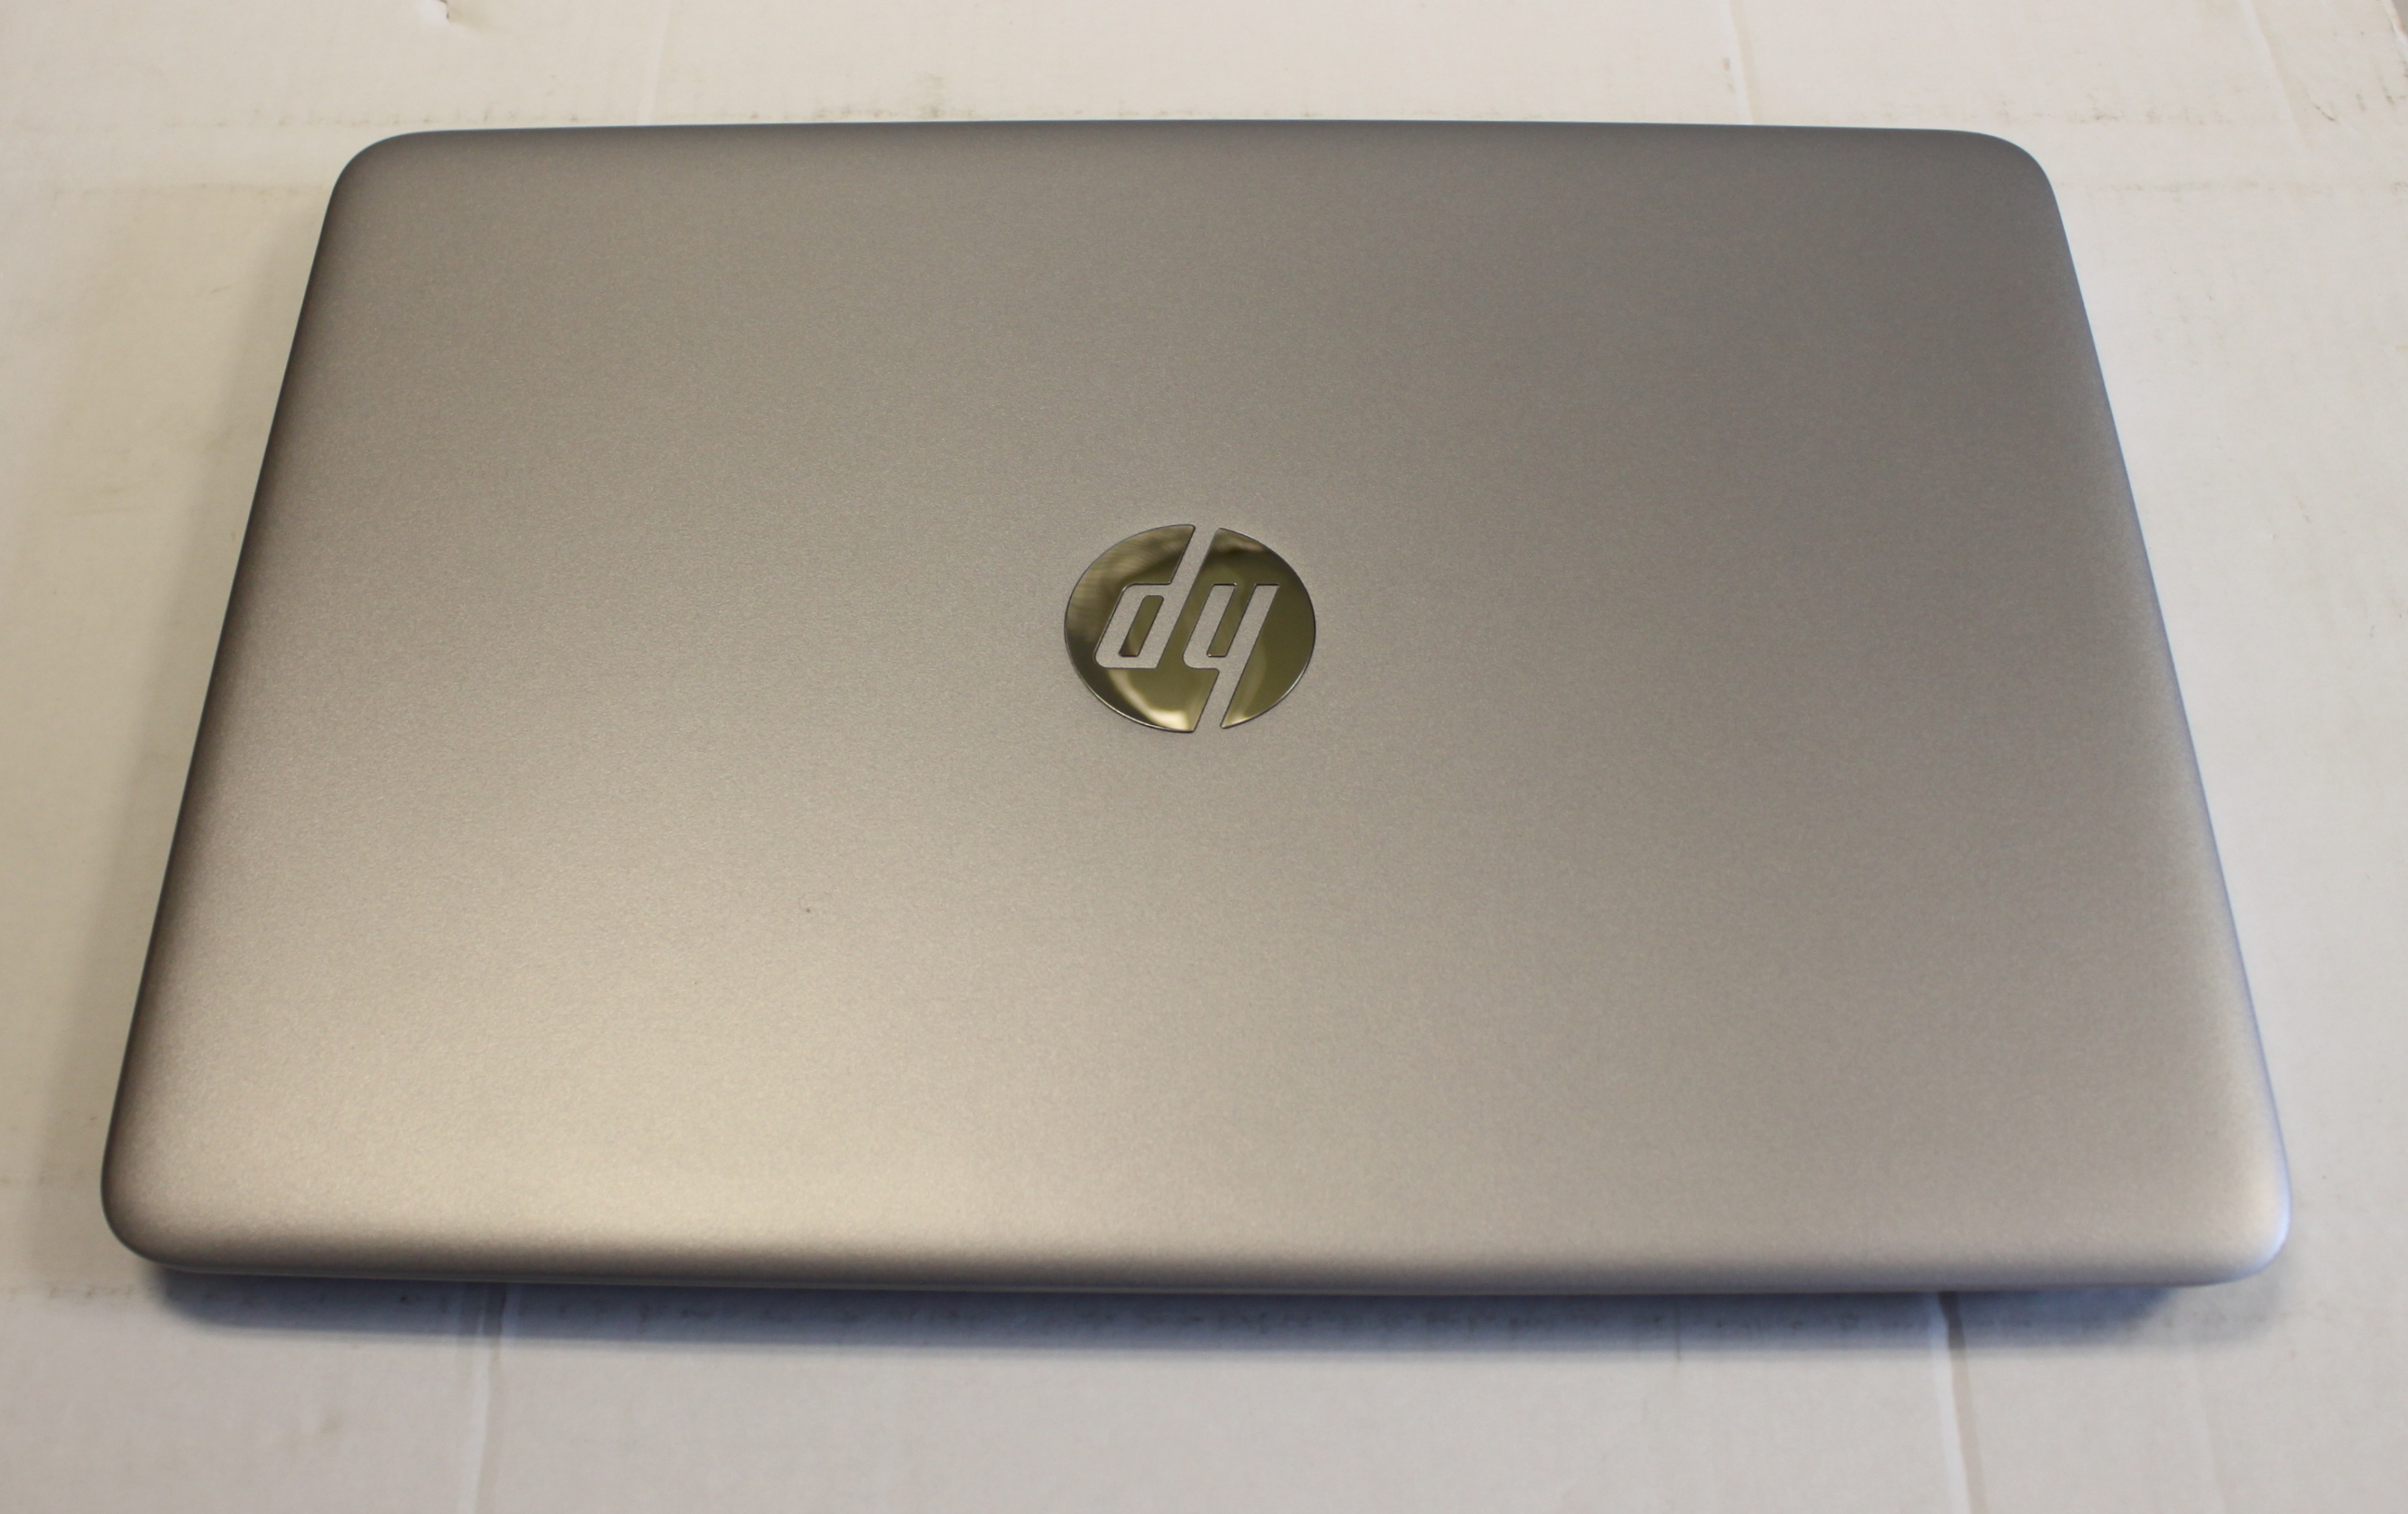 Details about HP EliteBook 840 G4 i5-7300U 2 60GHz 14